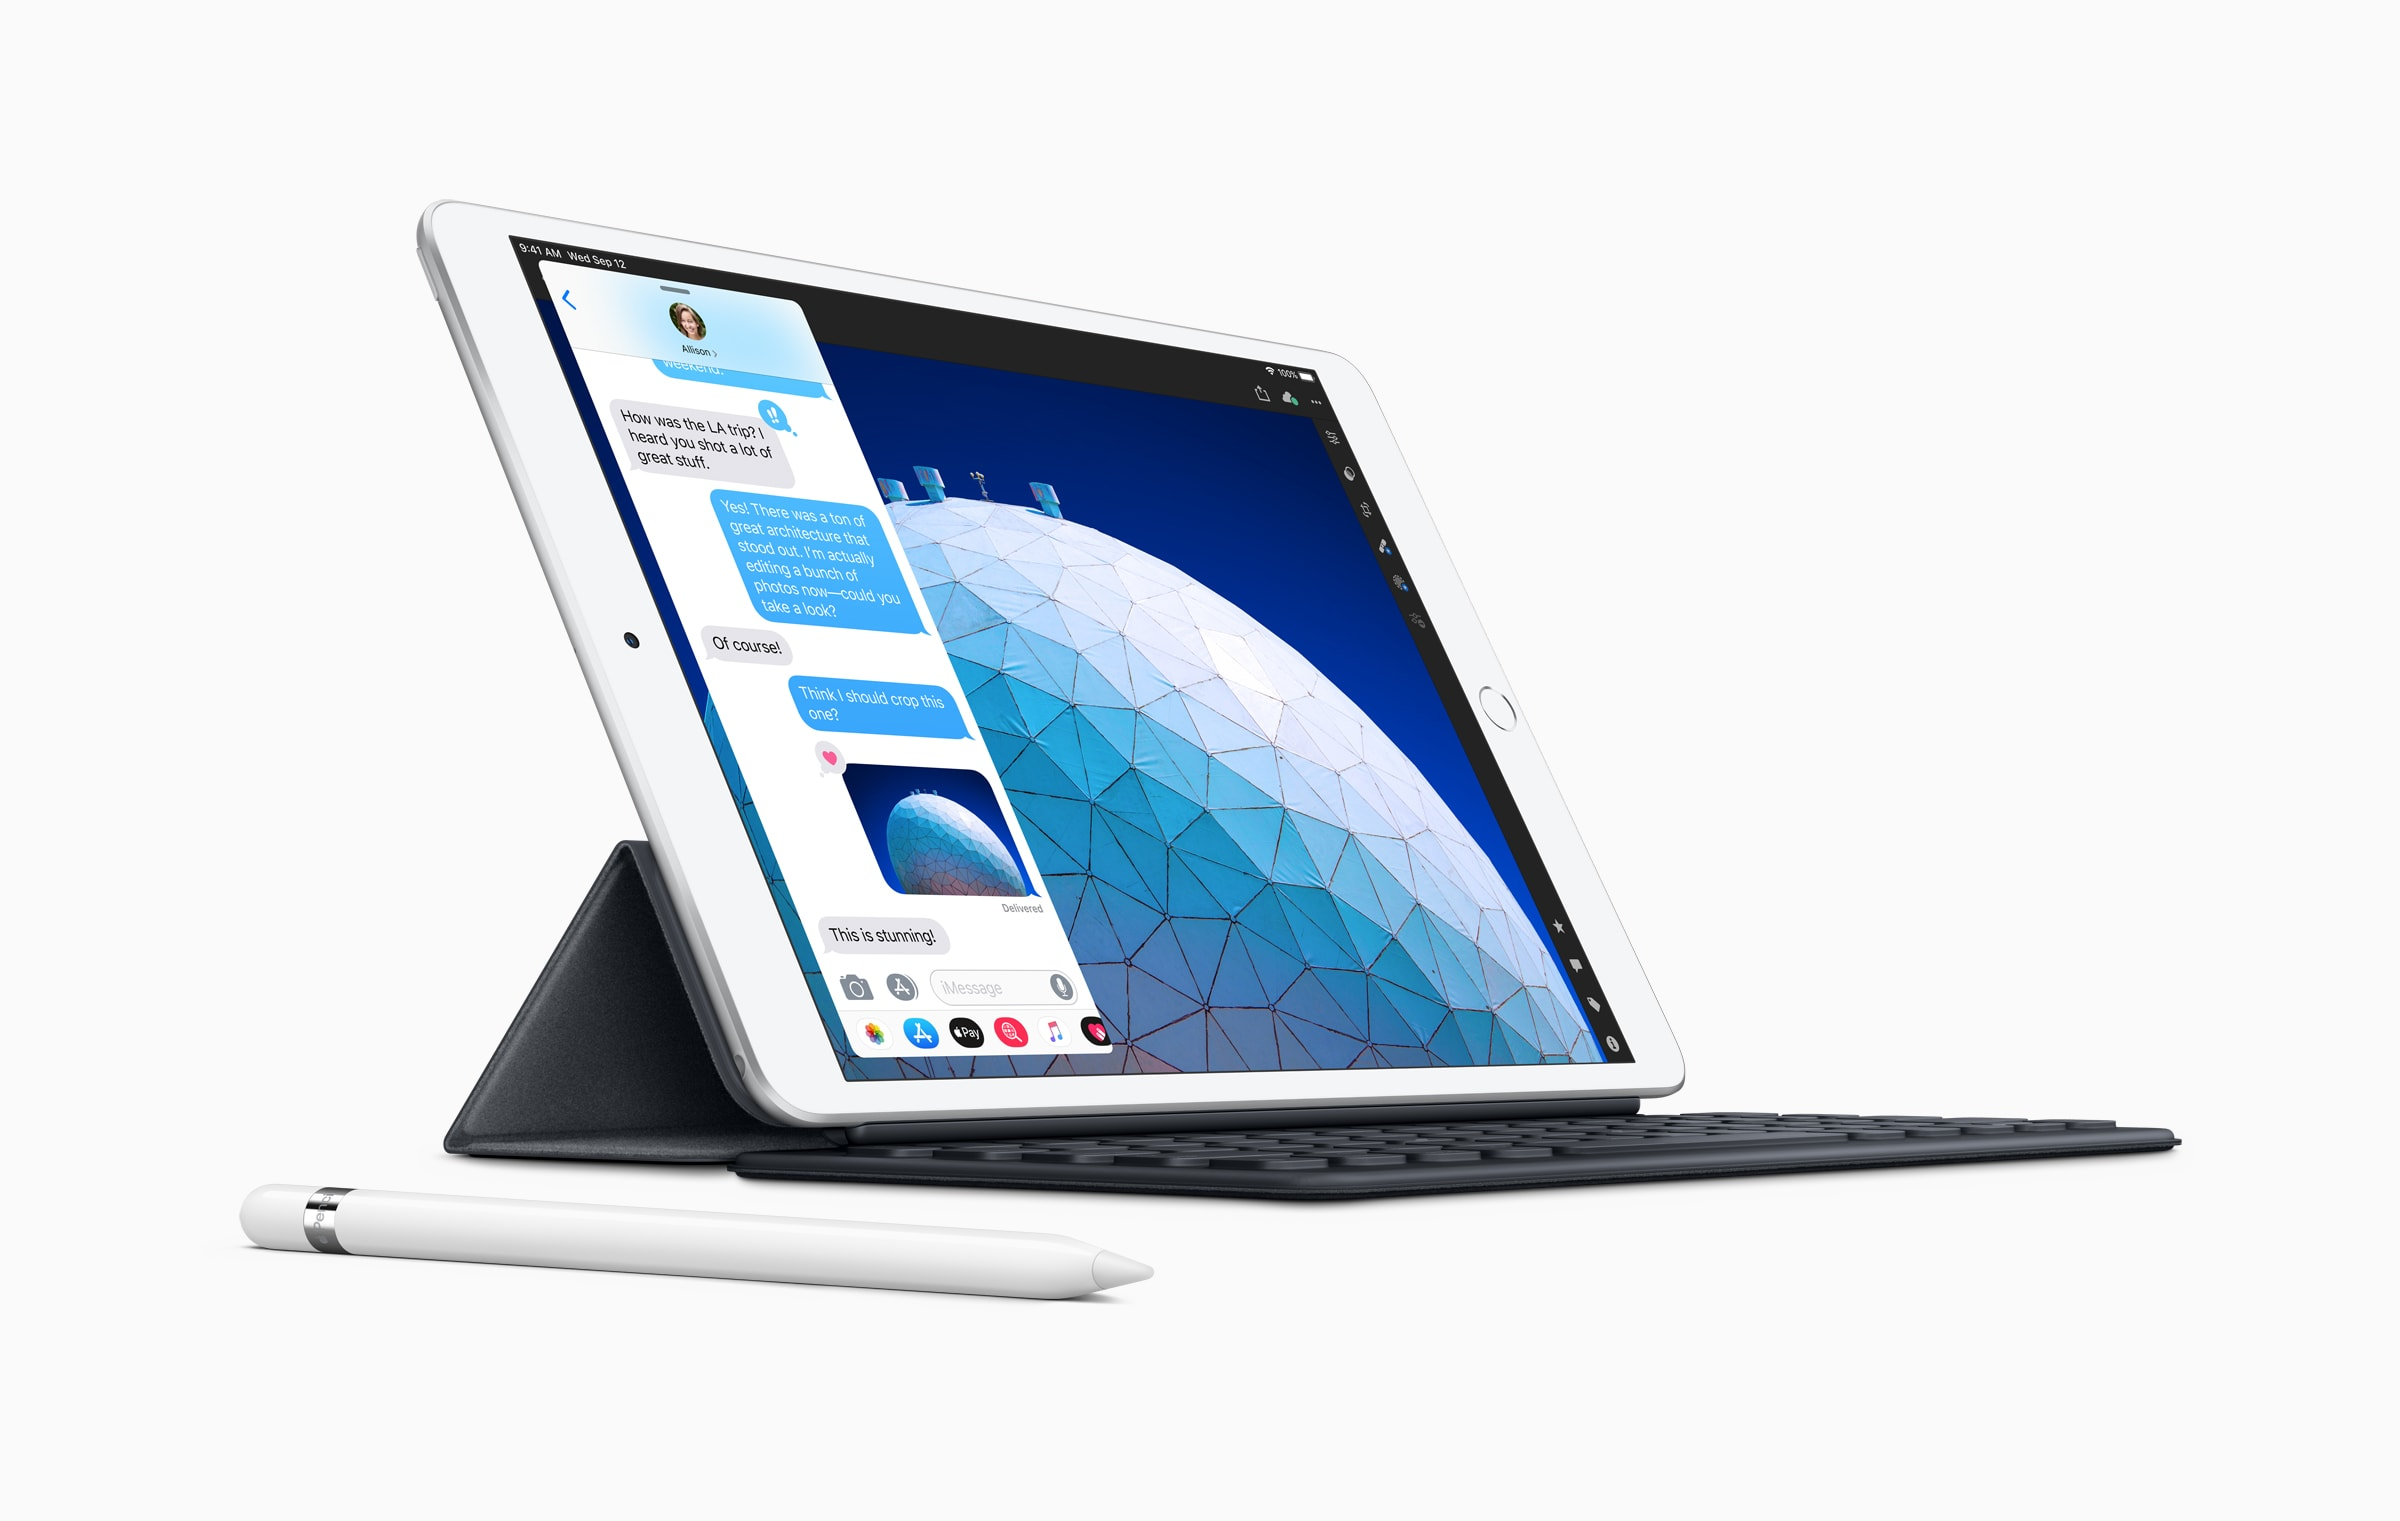 The new 2019 iPad Air, with its 10.5-inch screen, works with Apple's existing Smart Keyboard.